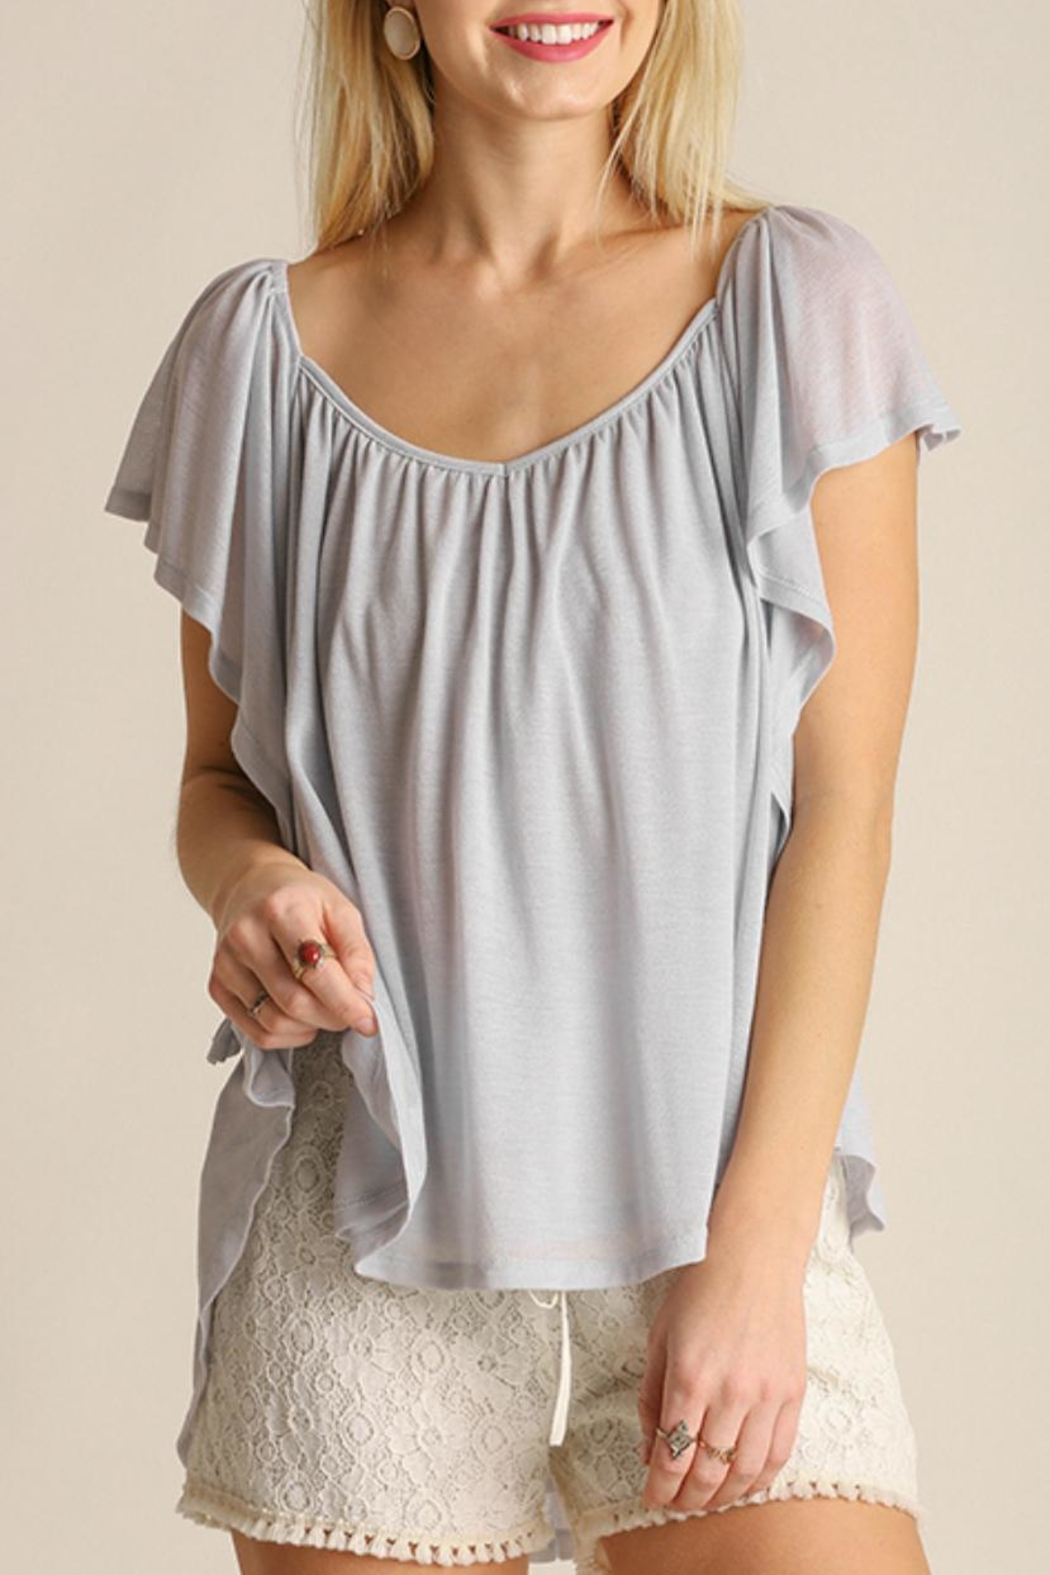 Umgee USA Ruffle Short-Sleeve Top - Main Image